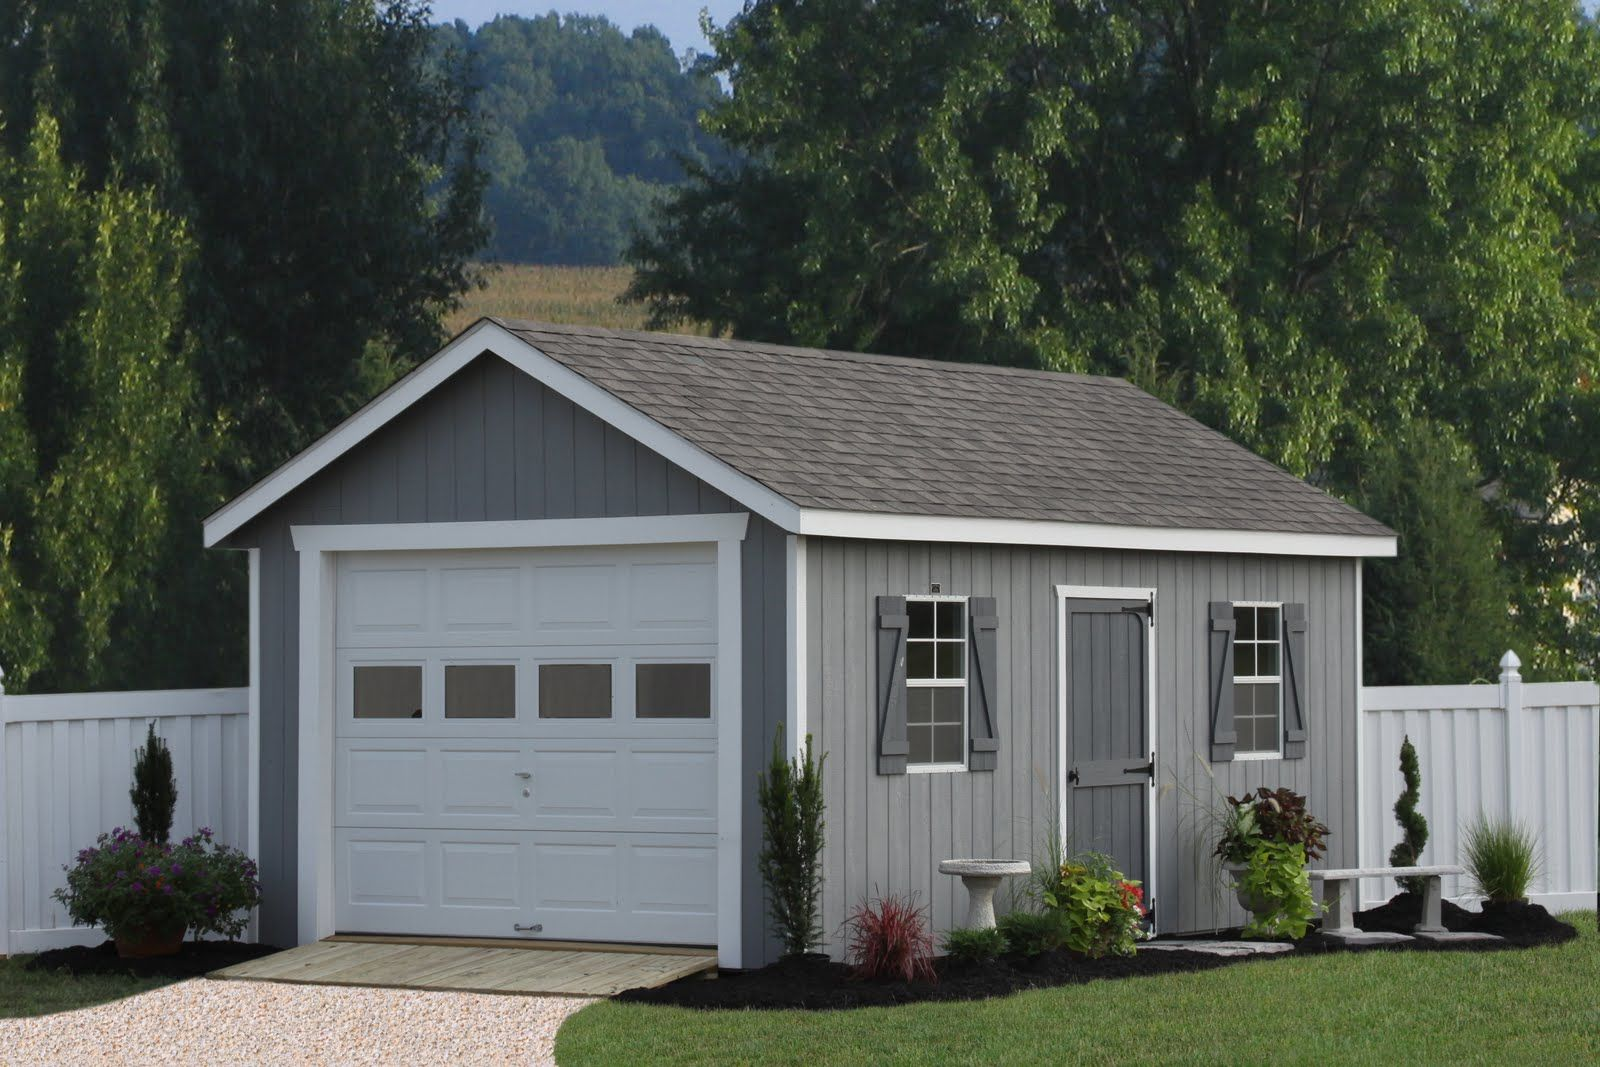 Add on garage plans 12x20 classic one car garage for Dimensions single car garage